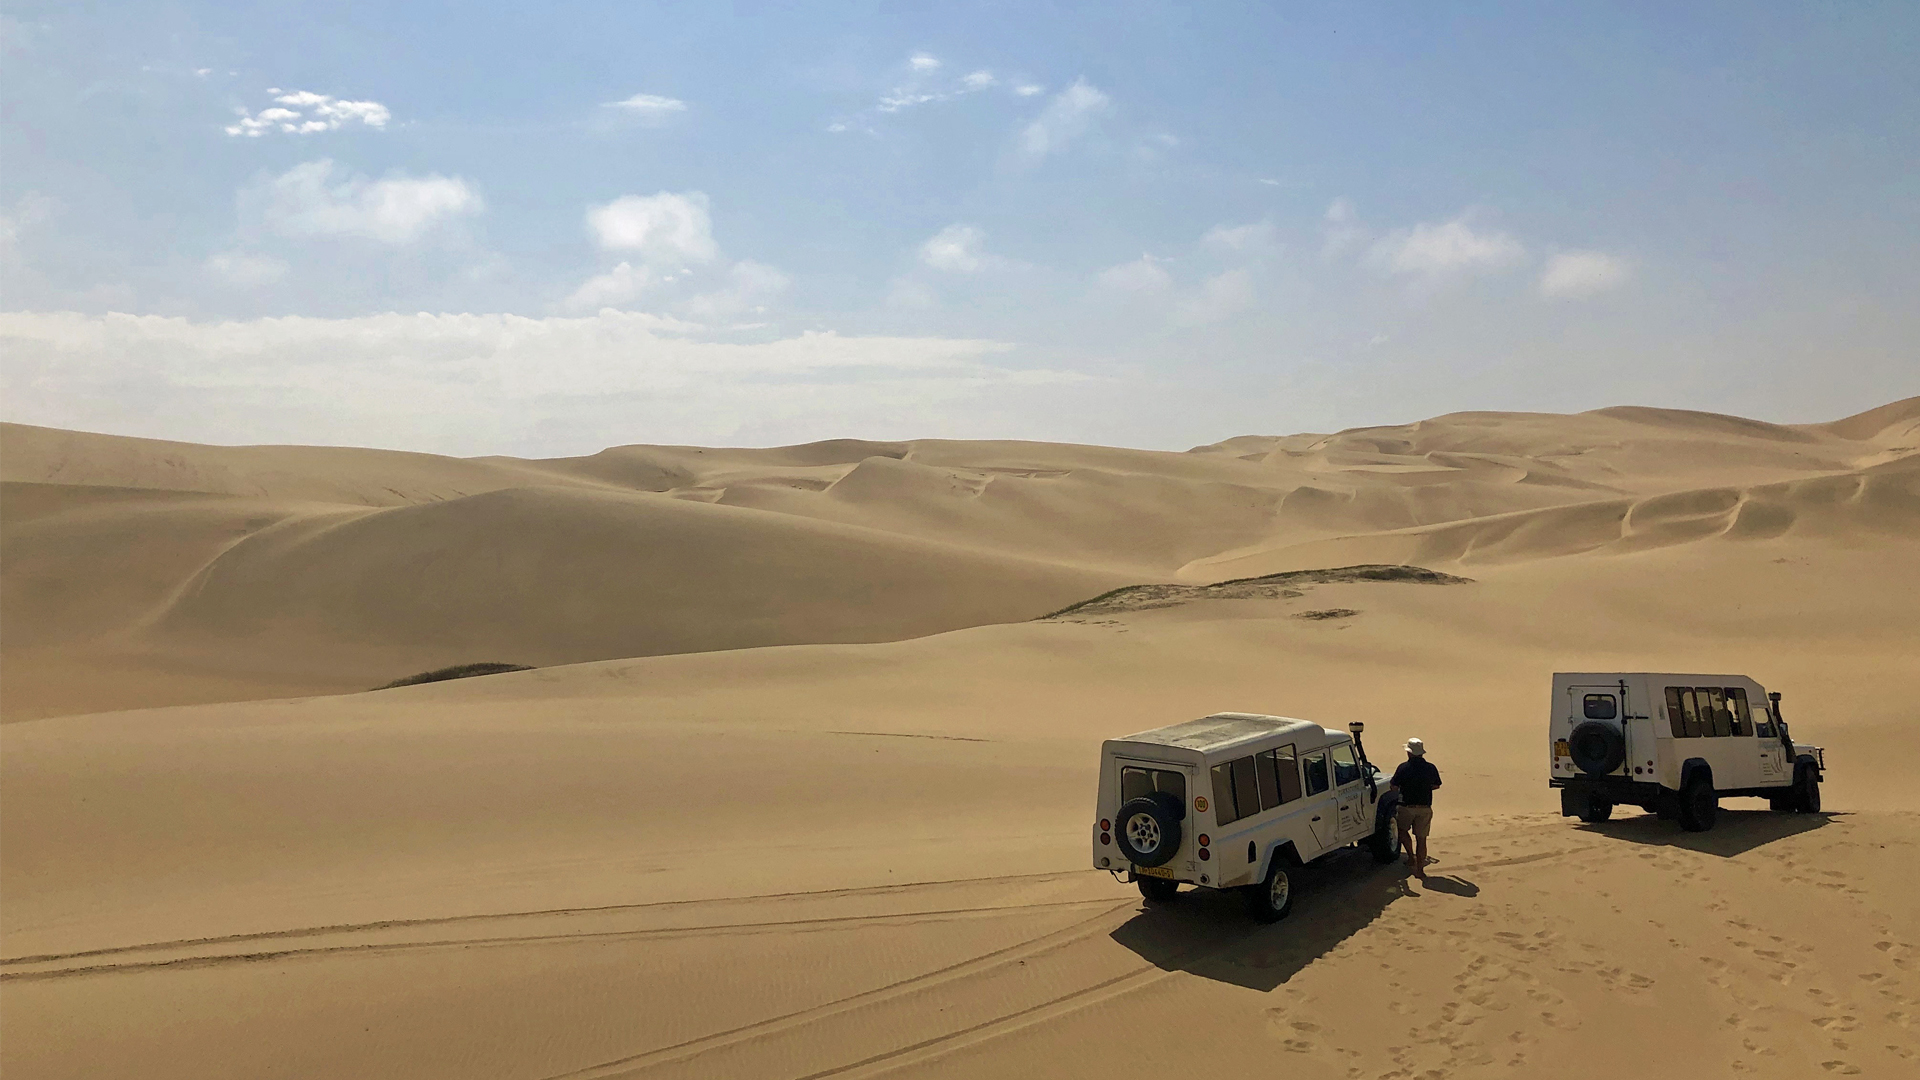 namibia regions SWAKOPMUND, WALVIS BAY AND THE COAST self-drive dunes